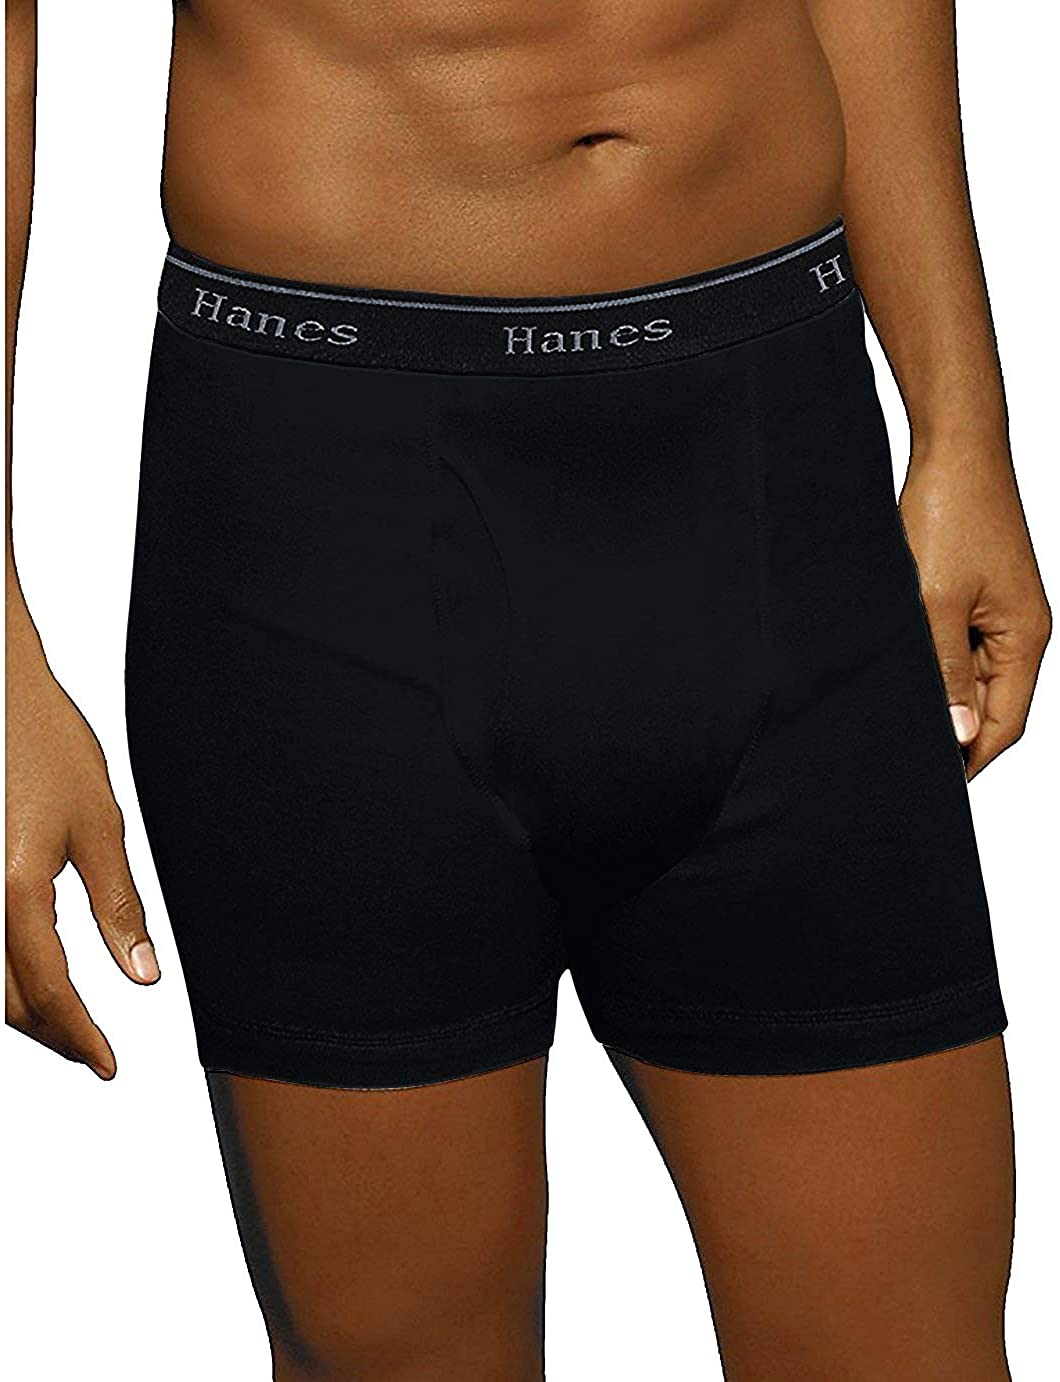 Hanes Men's 5-Pack Ultimate Boxer Briefs with ComfortFlex Waistband - Large Ful Black